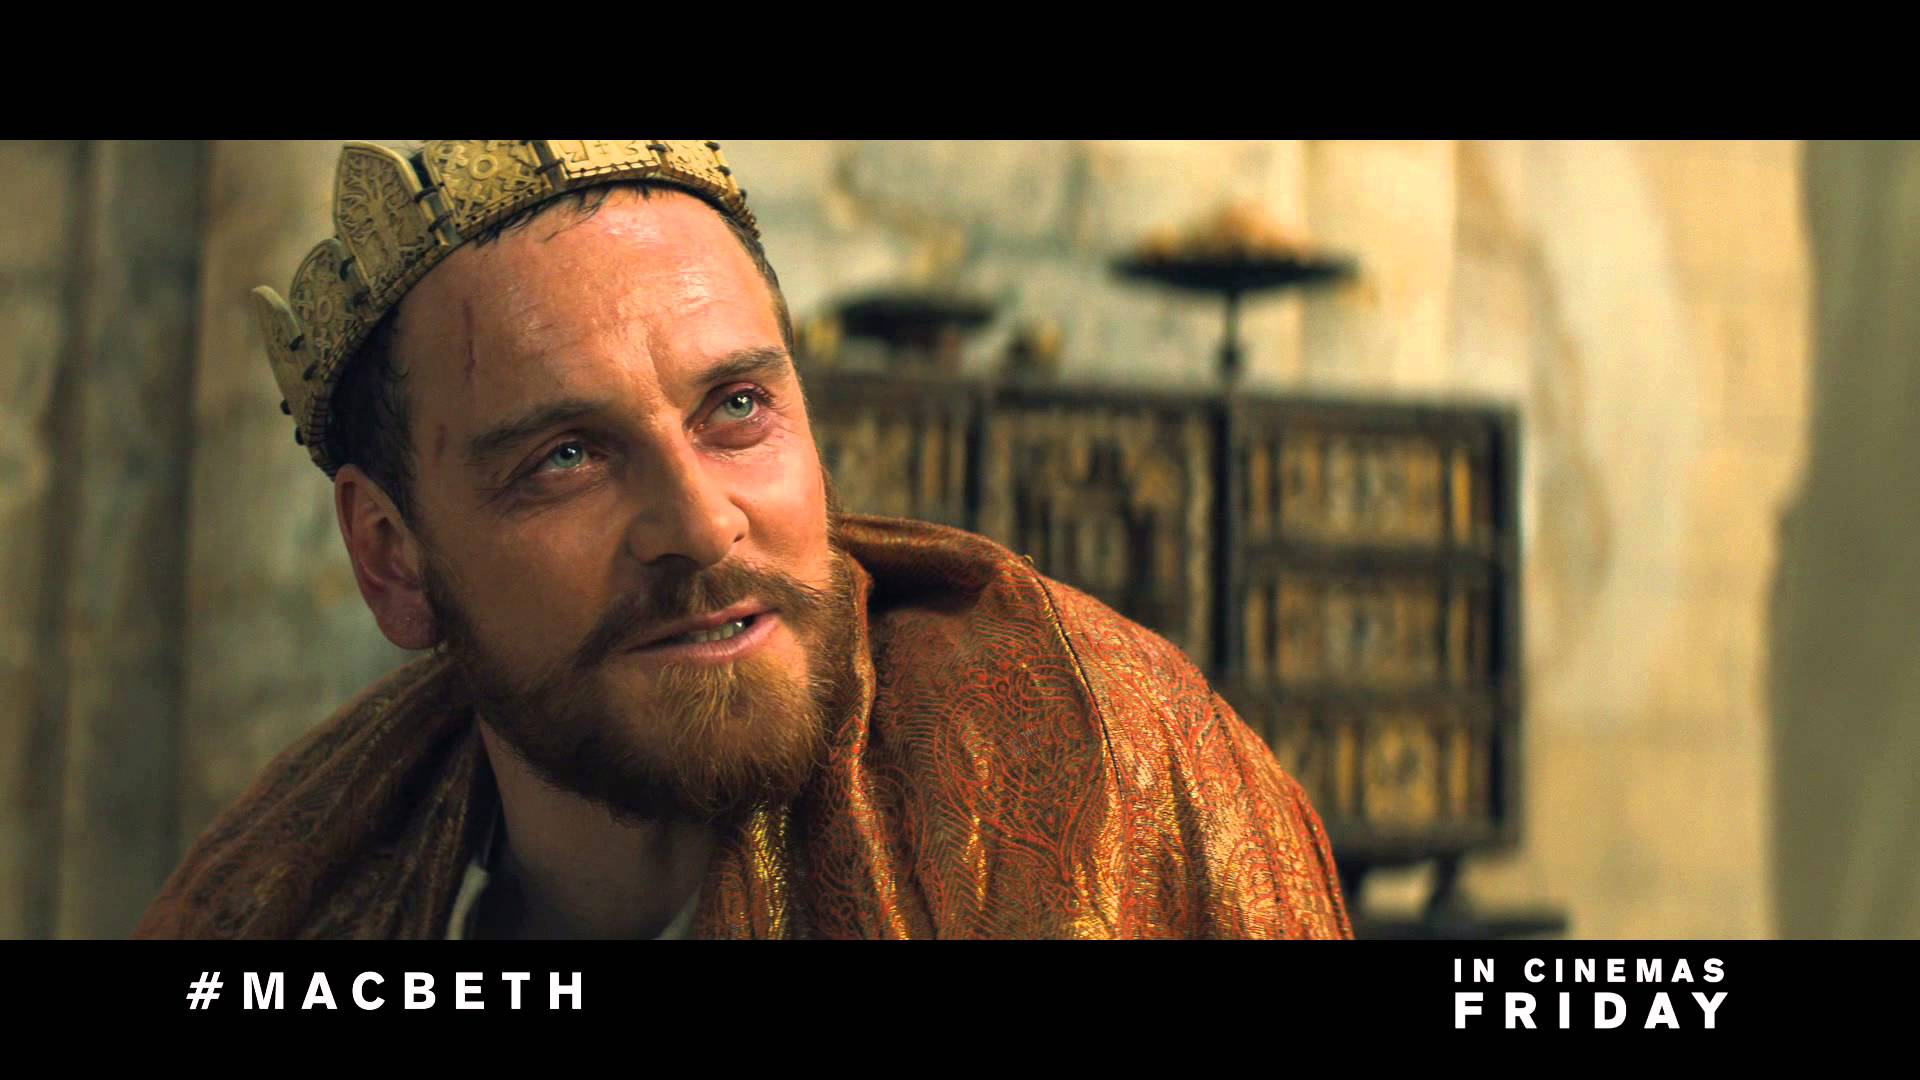 Macbeth 20 second TV spot